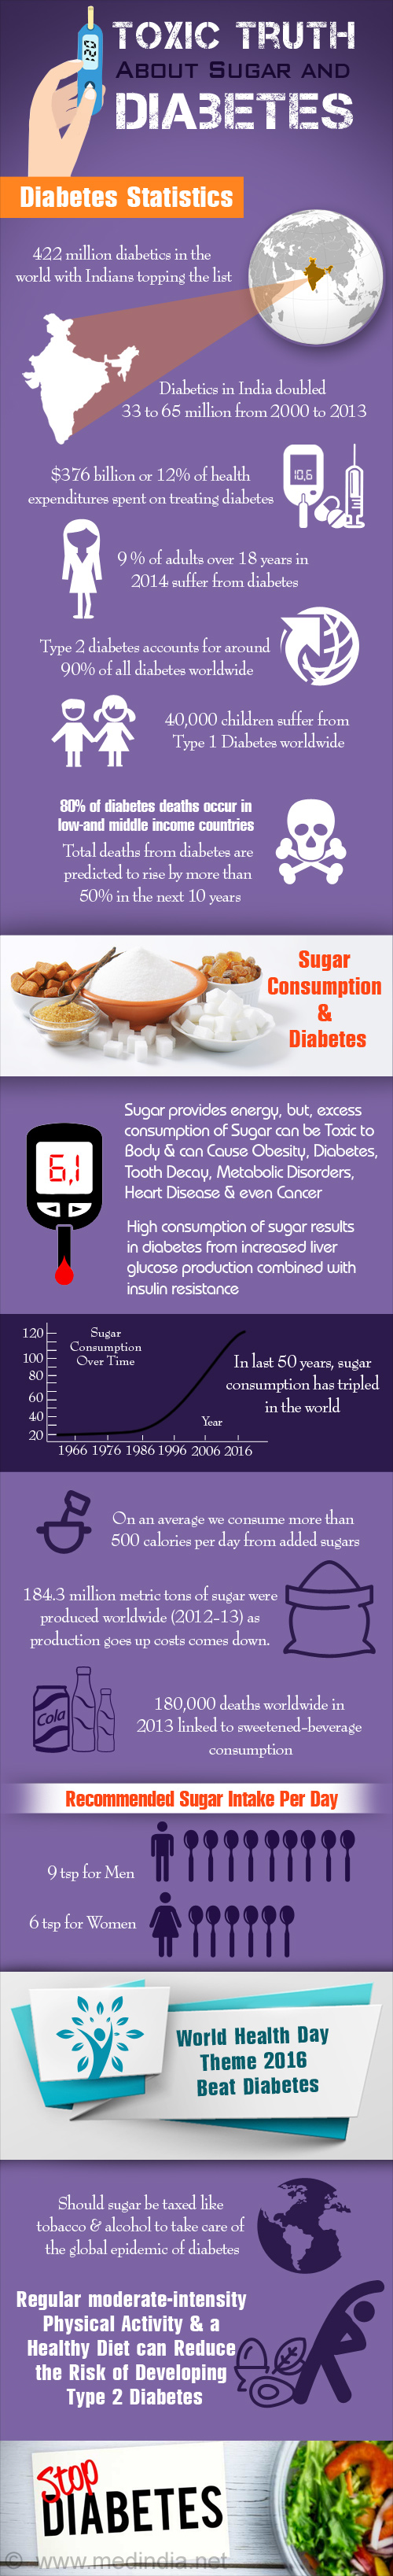 Toxic Truth About Sugar and Diabetes